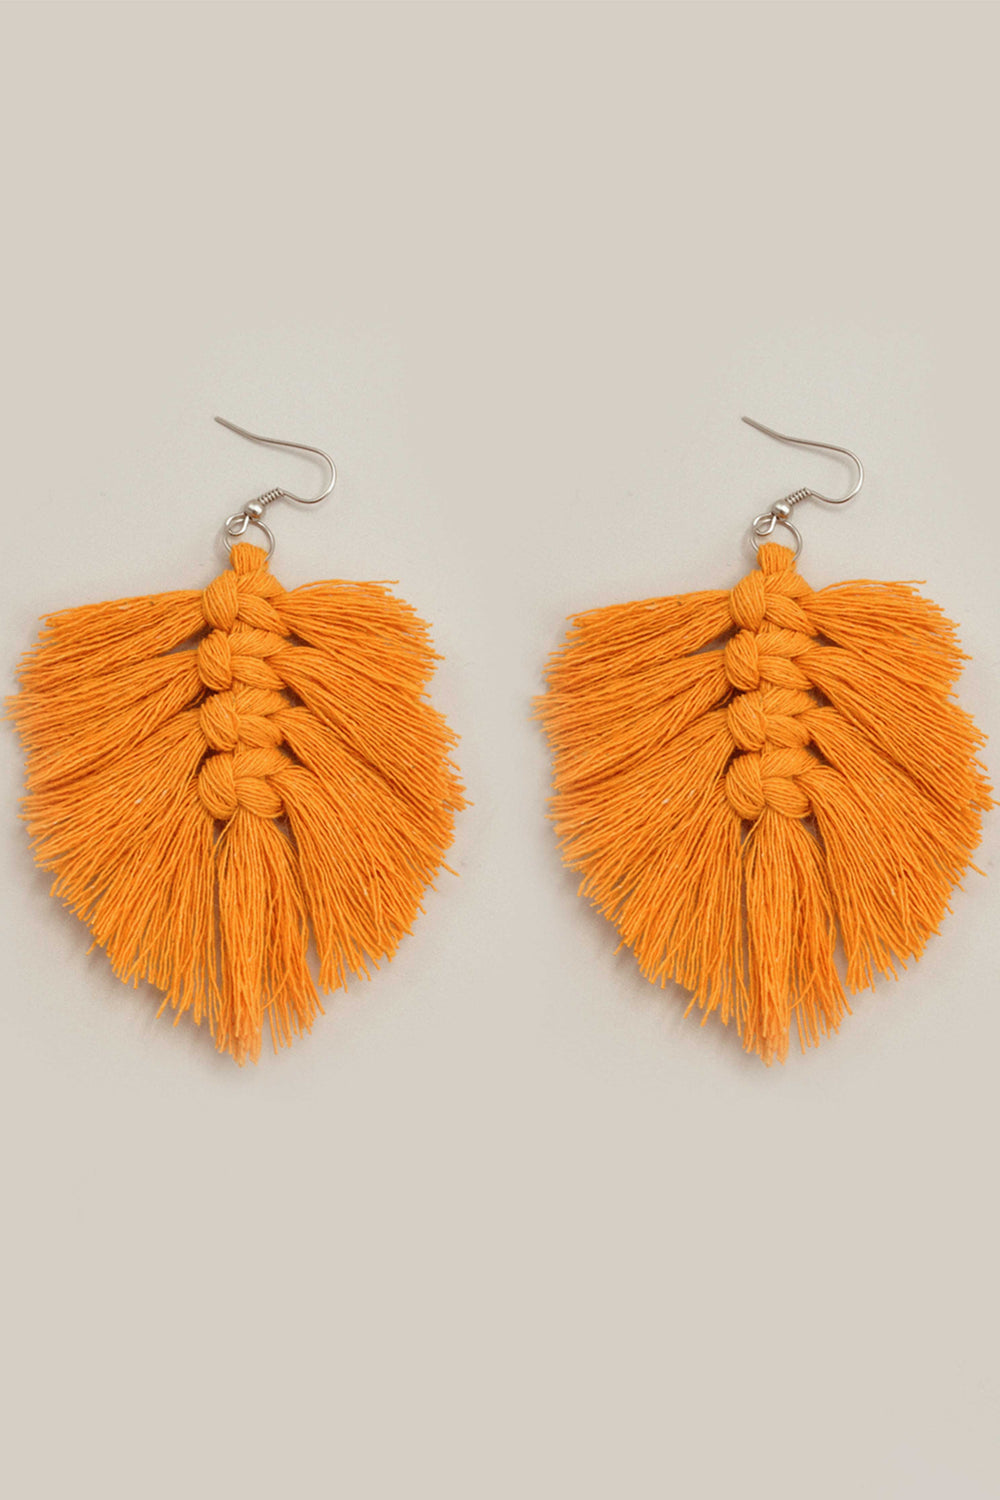 HONOLULU EARRINGS - Chic Le Frique